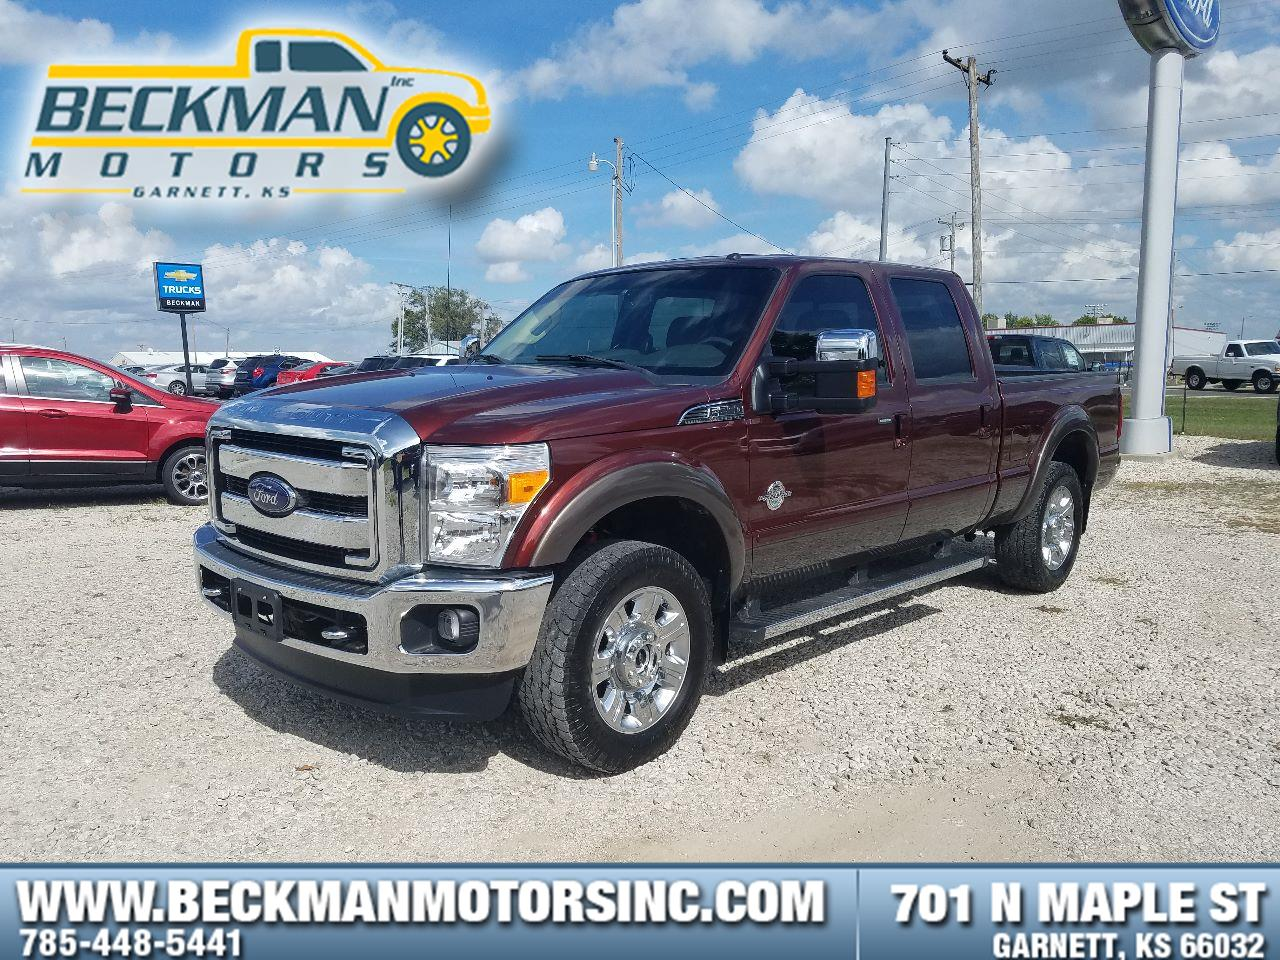 2016 Ford Super Duty F-250 SRW Lariat Crew Cab Pickup - Standard Bed